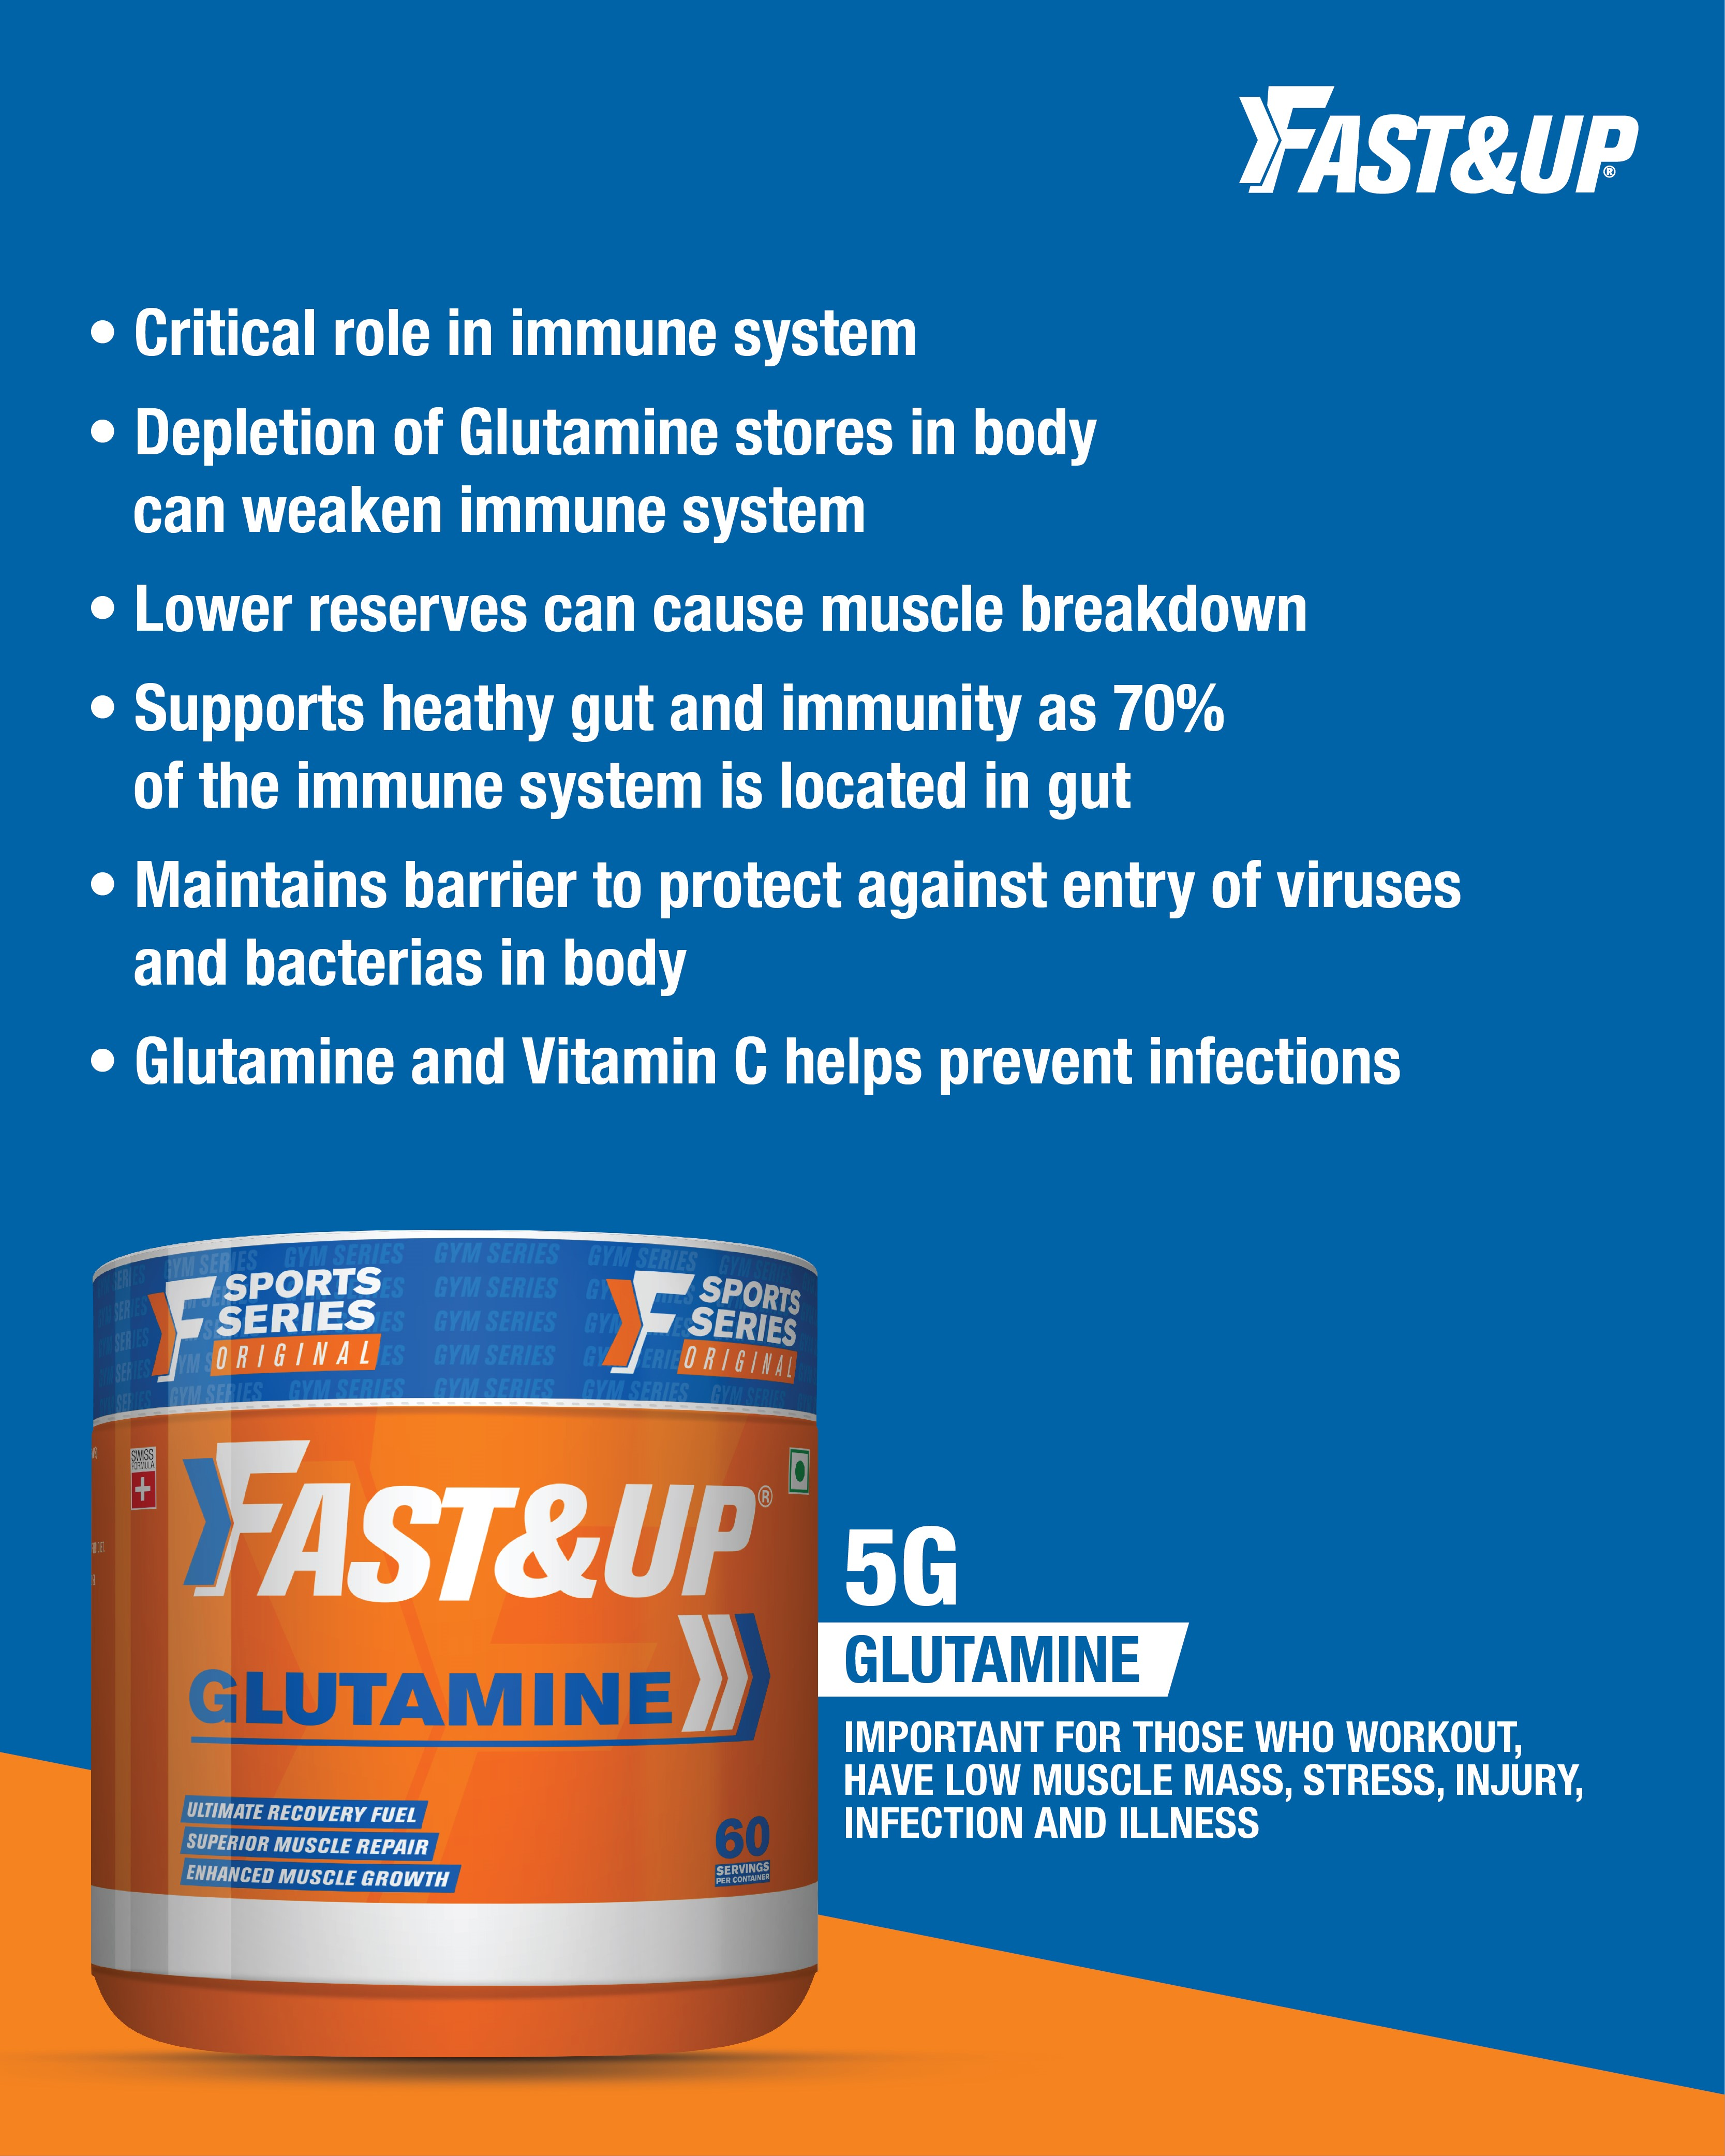 How does Glutamine helps to build immunity